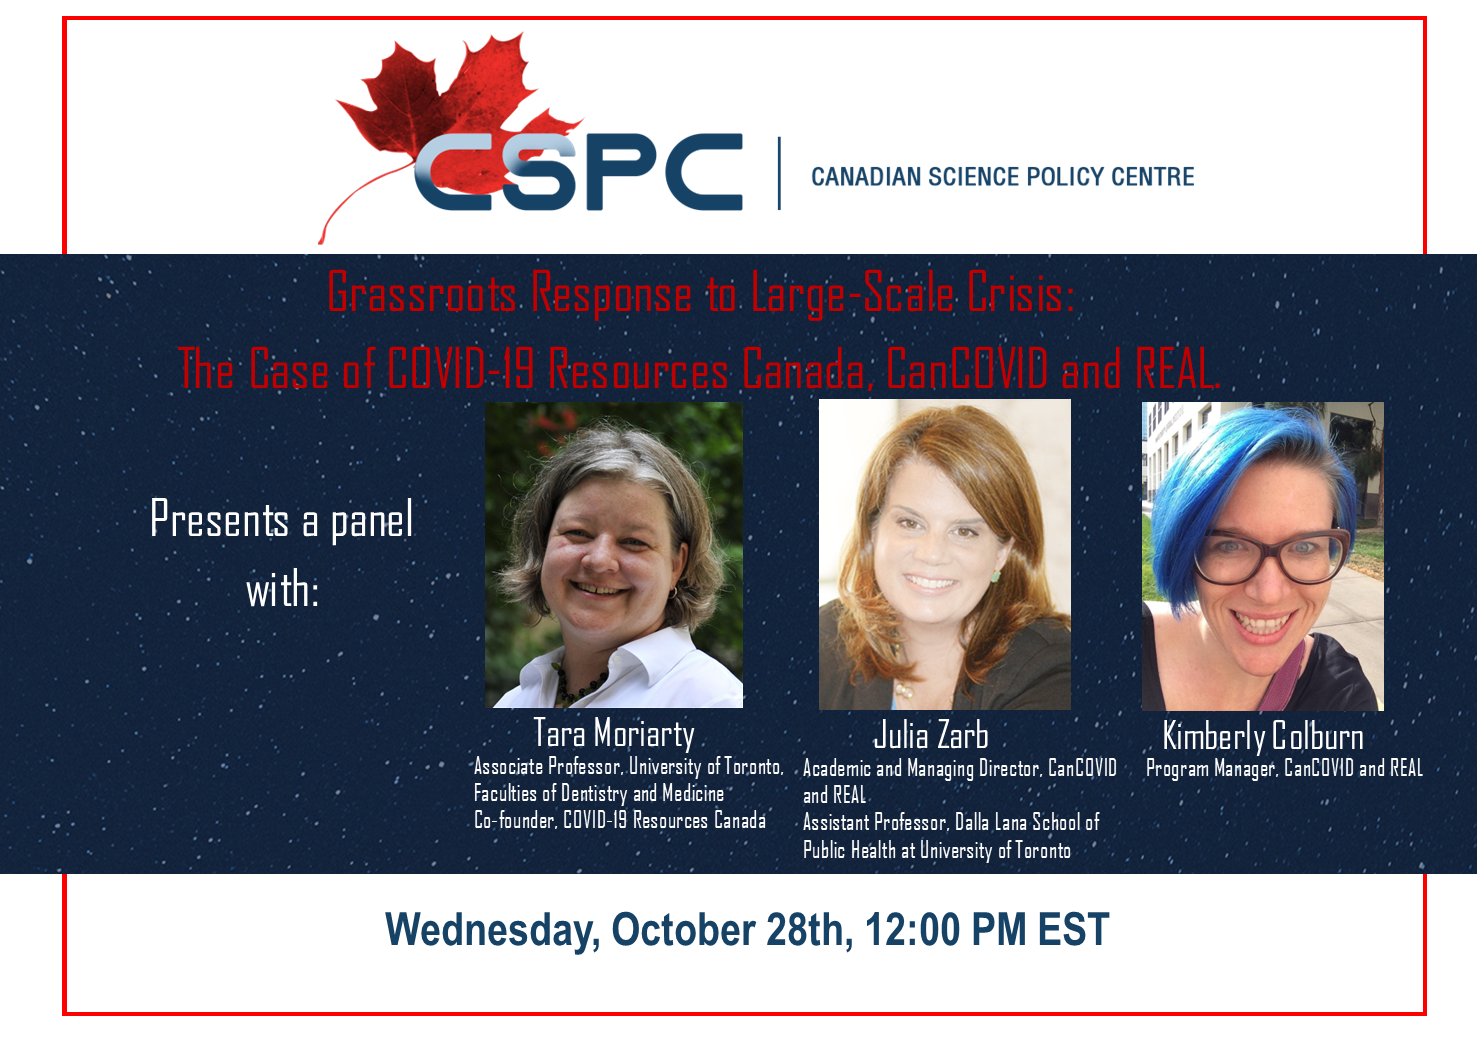 "Promotional poster for the event ""Grassroots Response to Large-Scale Crisis: The Case of COVID-19 Resources Canada, CanCOVID and REAL. "" featuring pictures of the 3 female panelists"